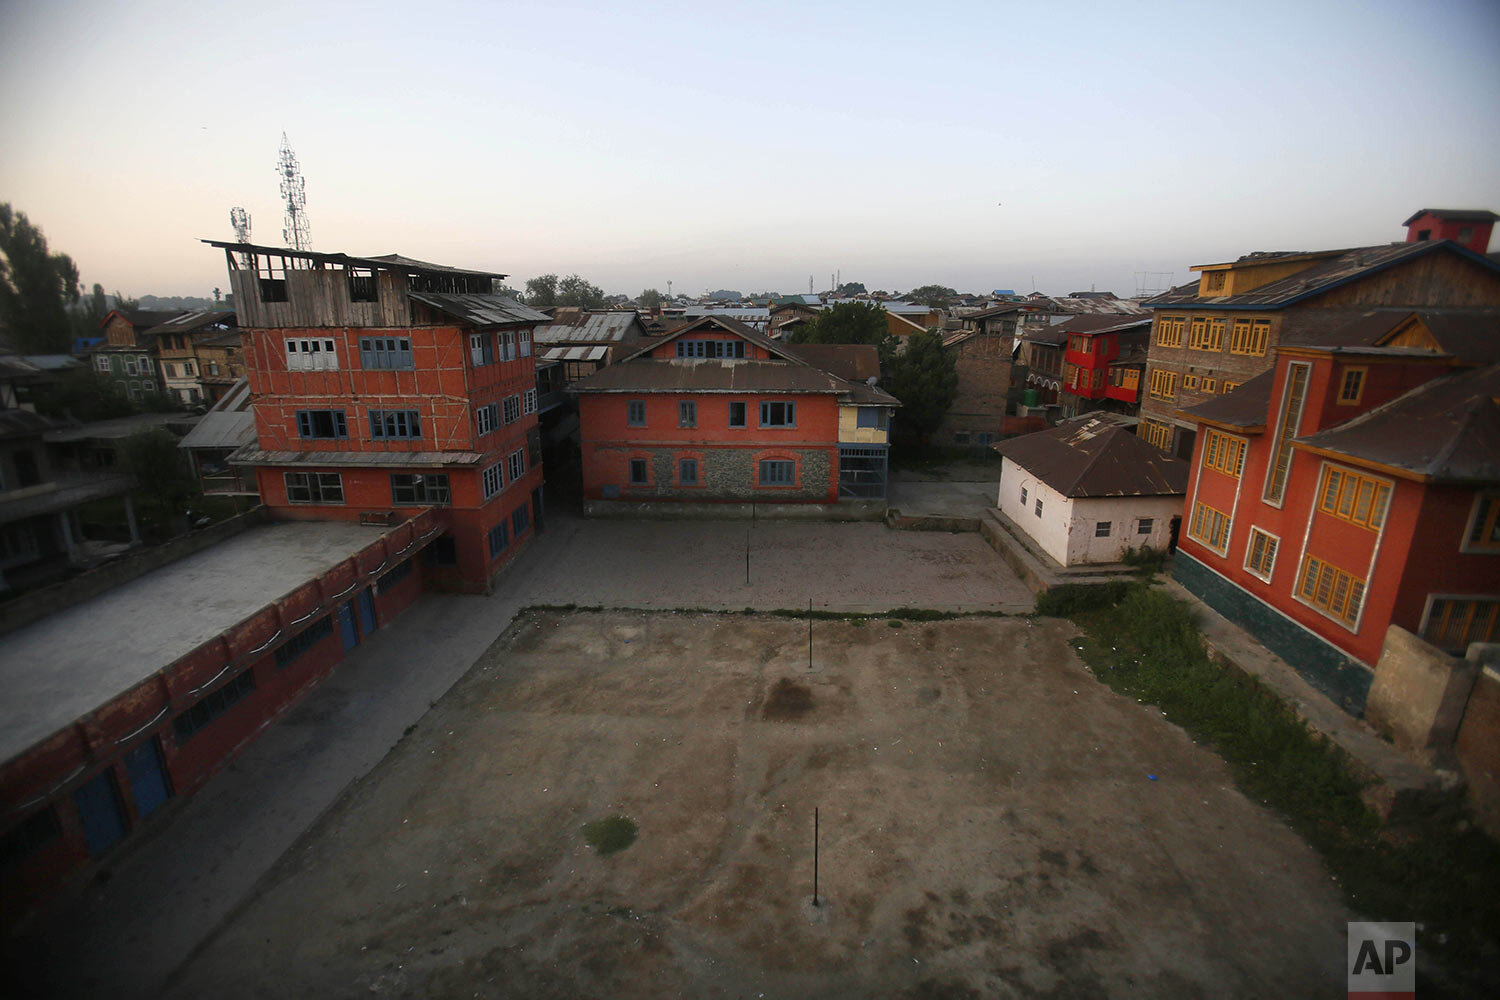 A school building stands isolated during a strike in Srinagar, Indian controlled Kashmir, Thursday, Sept. 12, 2019. (AP Photo/Mukhtar Khan)